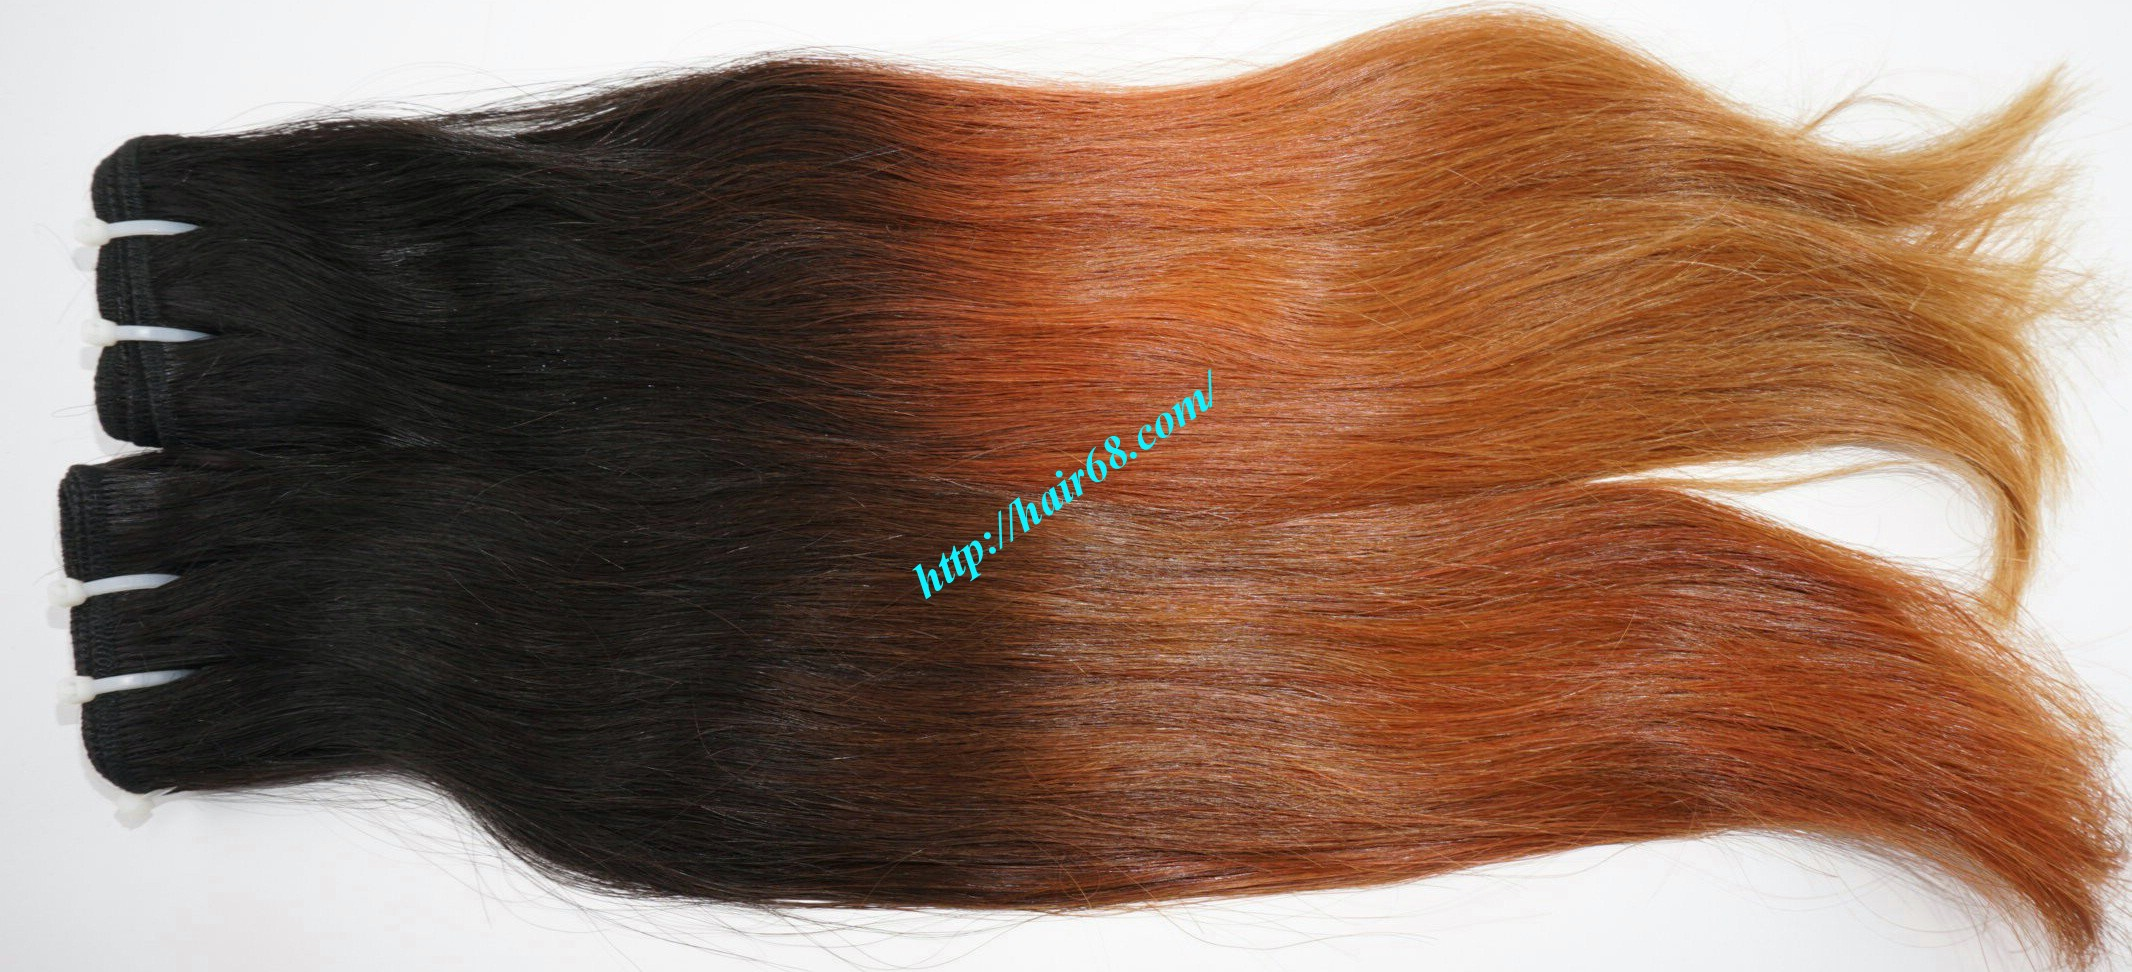 12 inch ombre hair extensions 5